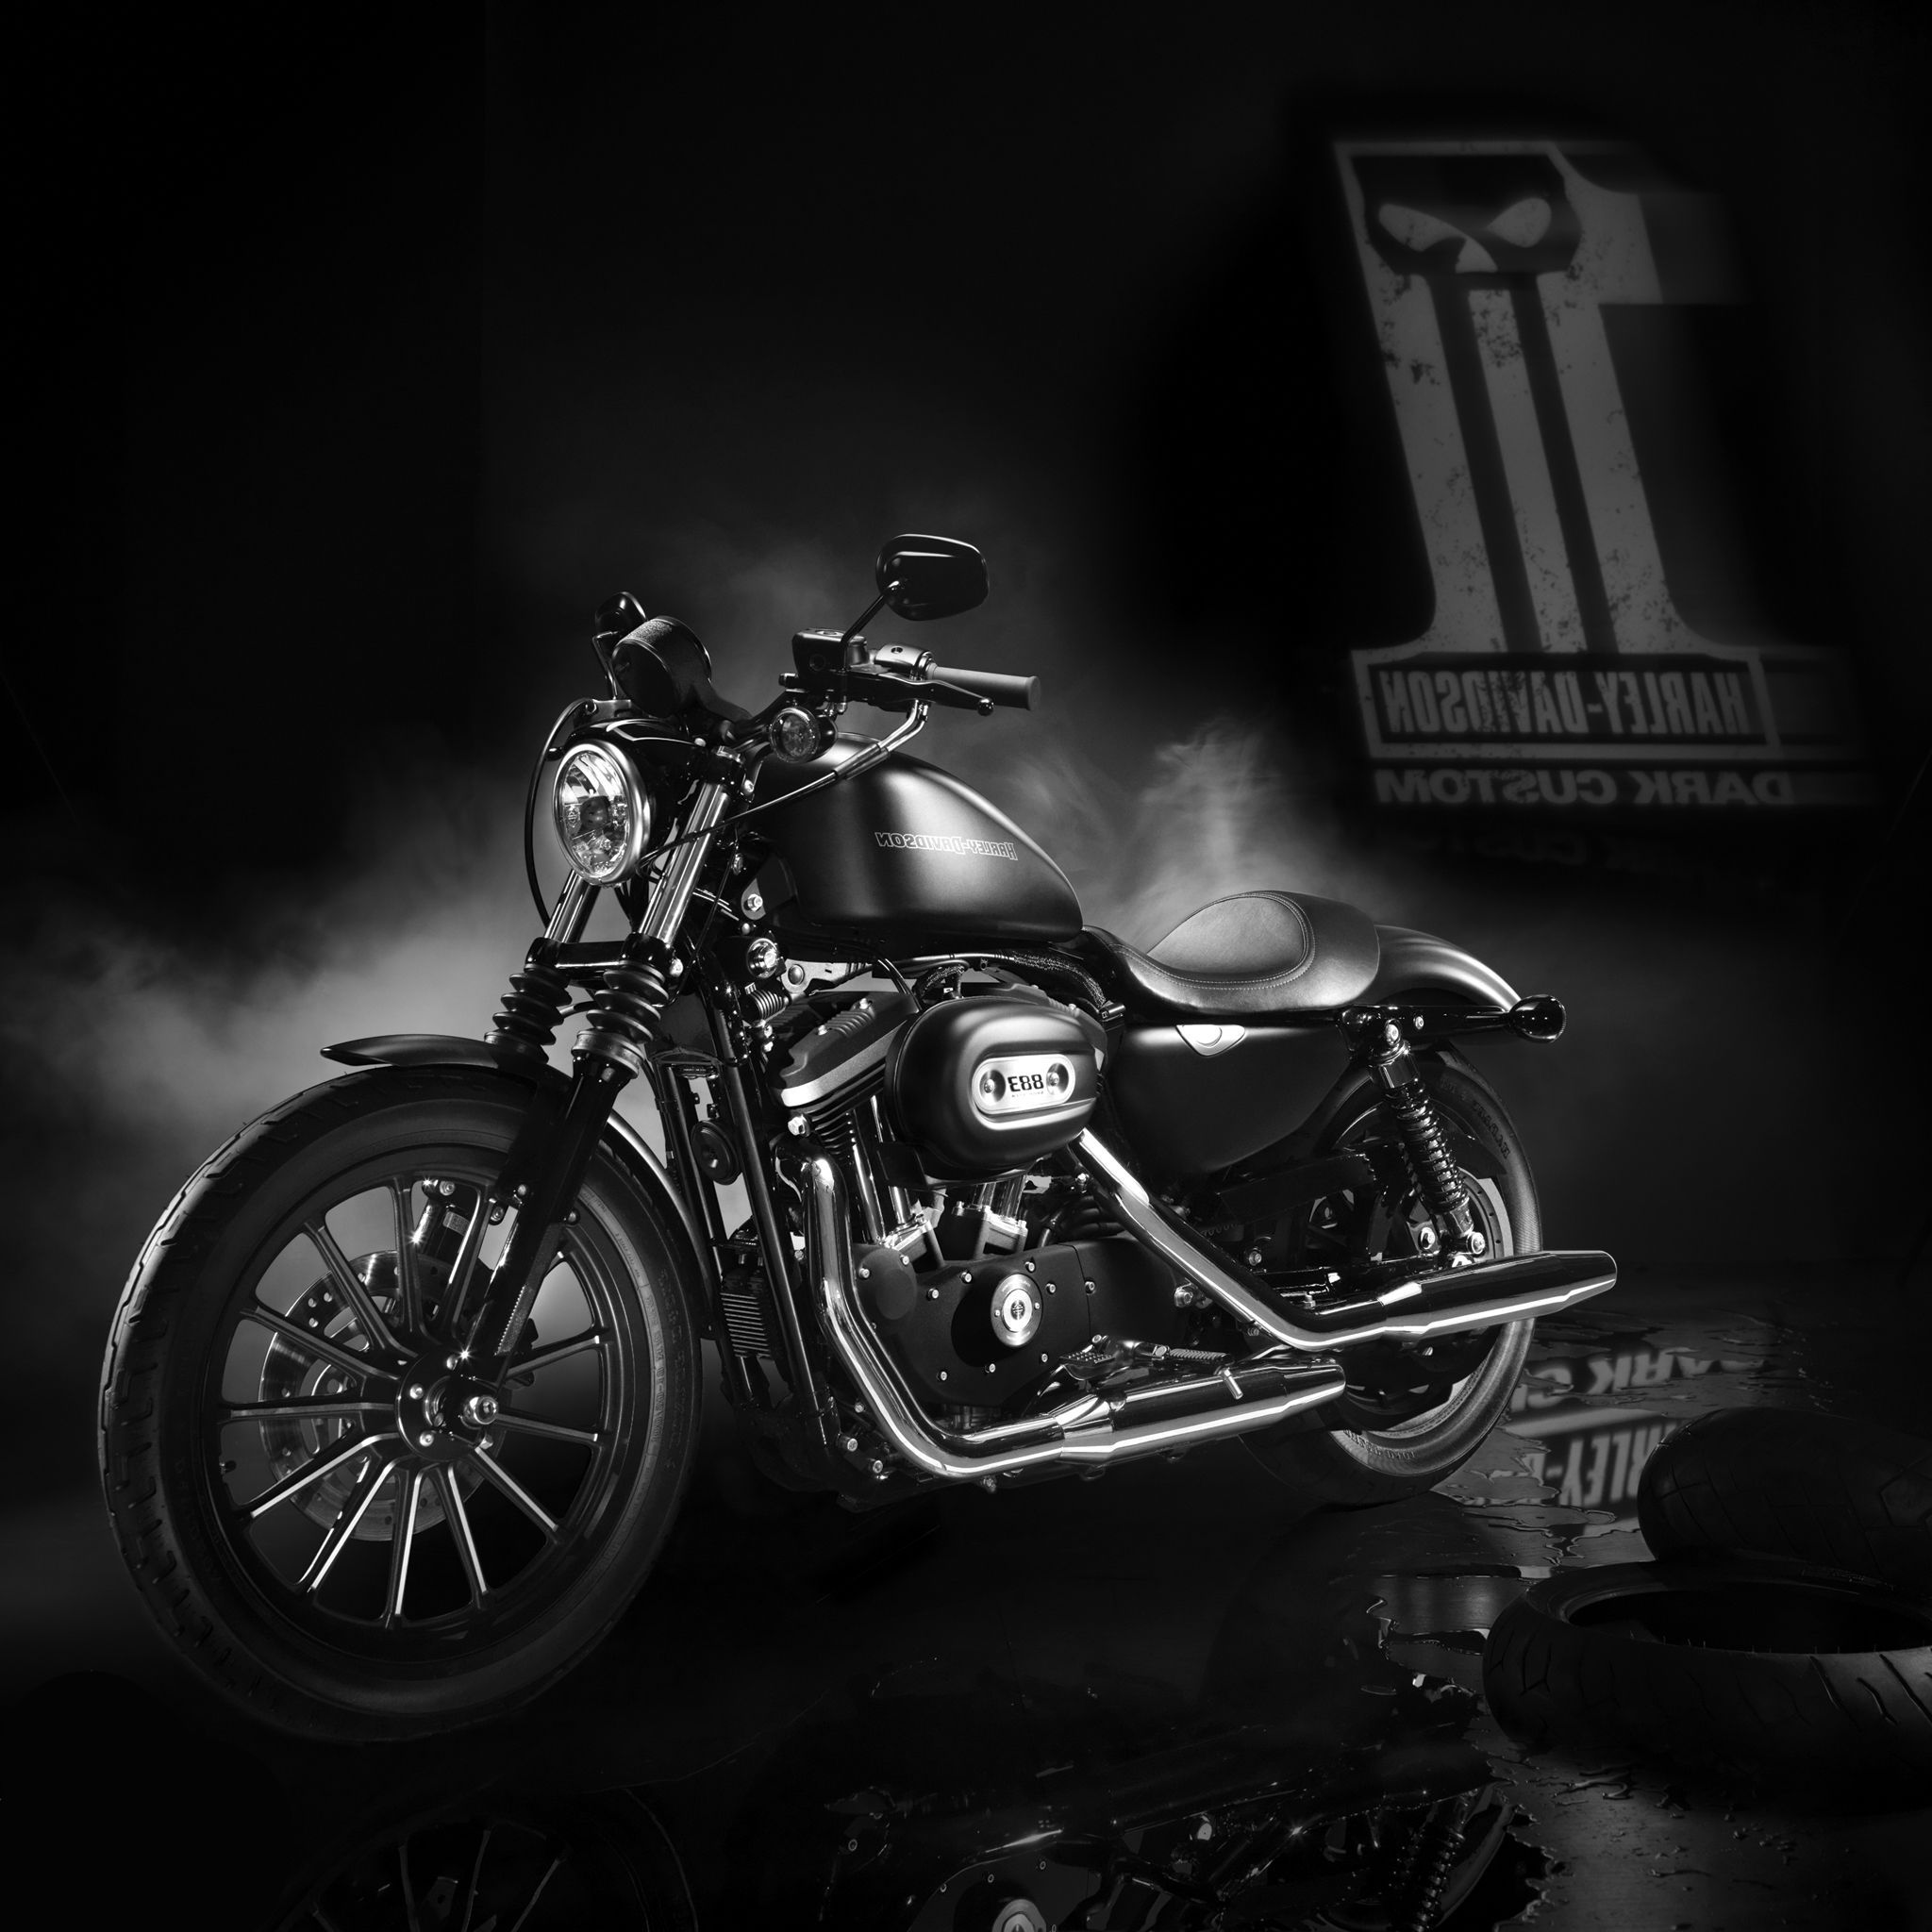 Harley Davidson Tap to see more of the best bikes